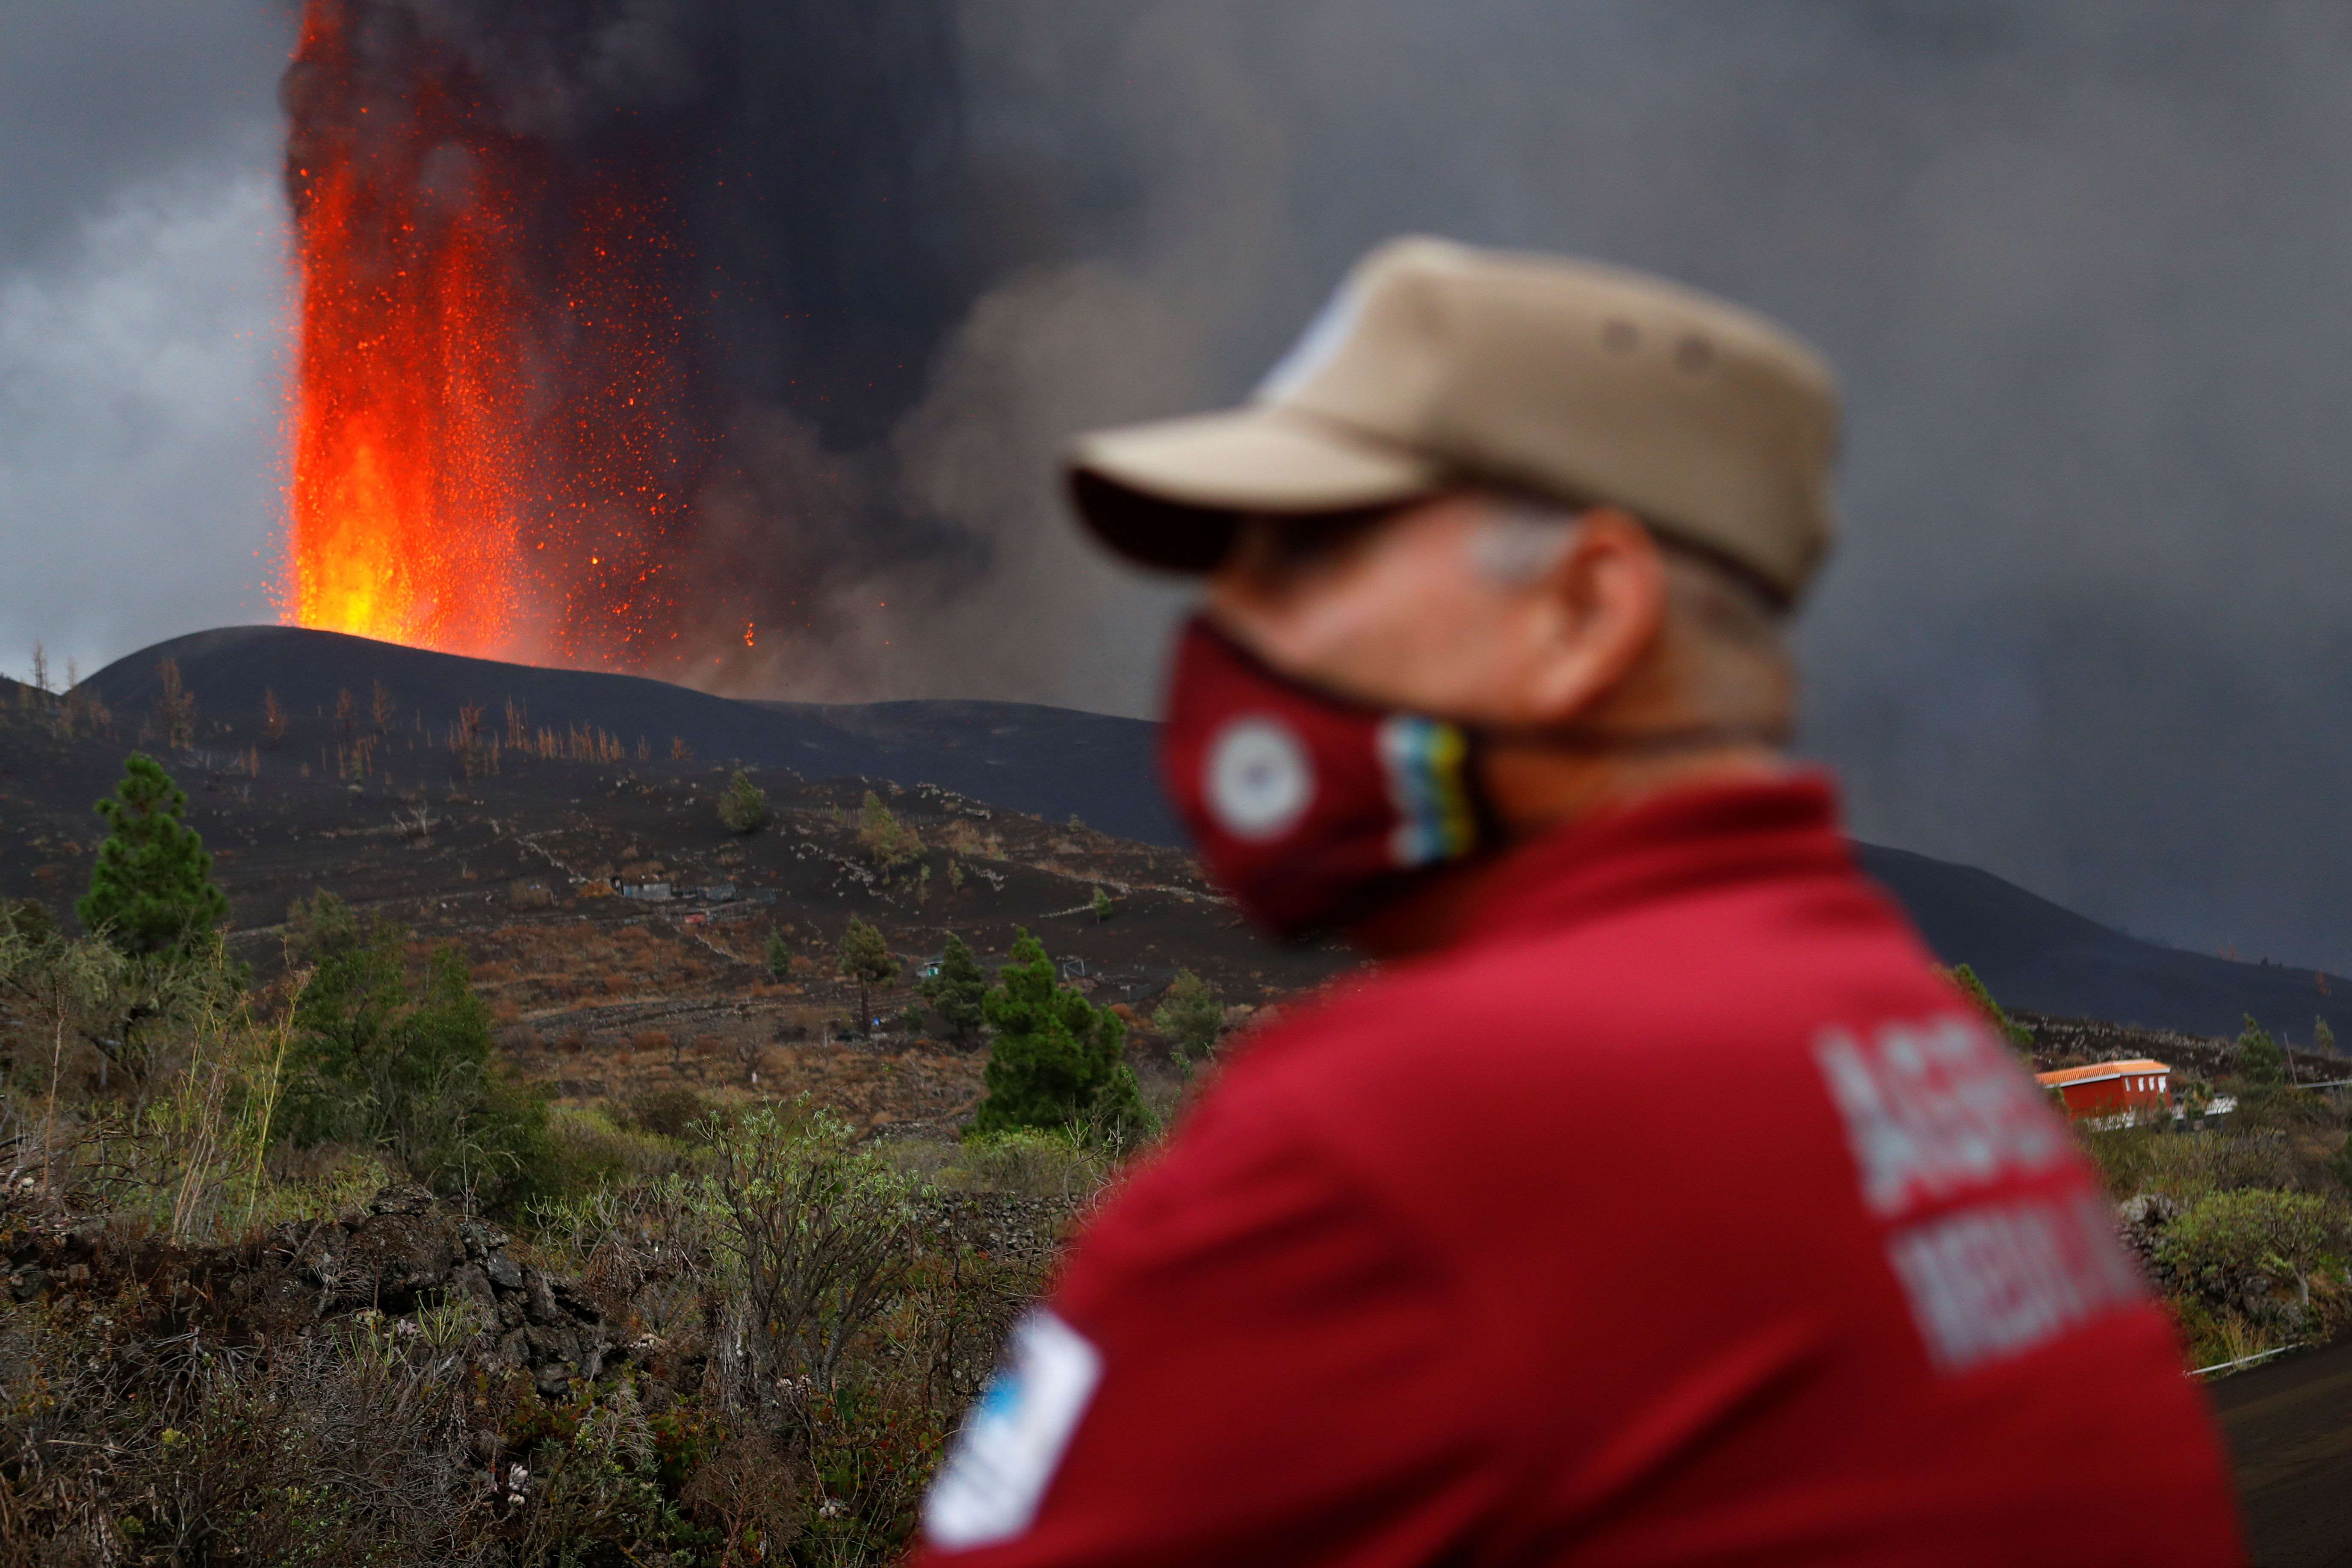 An environmental agent looks on as lava rises following the eruption of a volcano on the Island of La Palma, in Tacande, Spain September 22, 2021. REUTERS/Borja Suarez